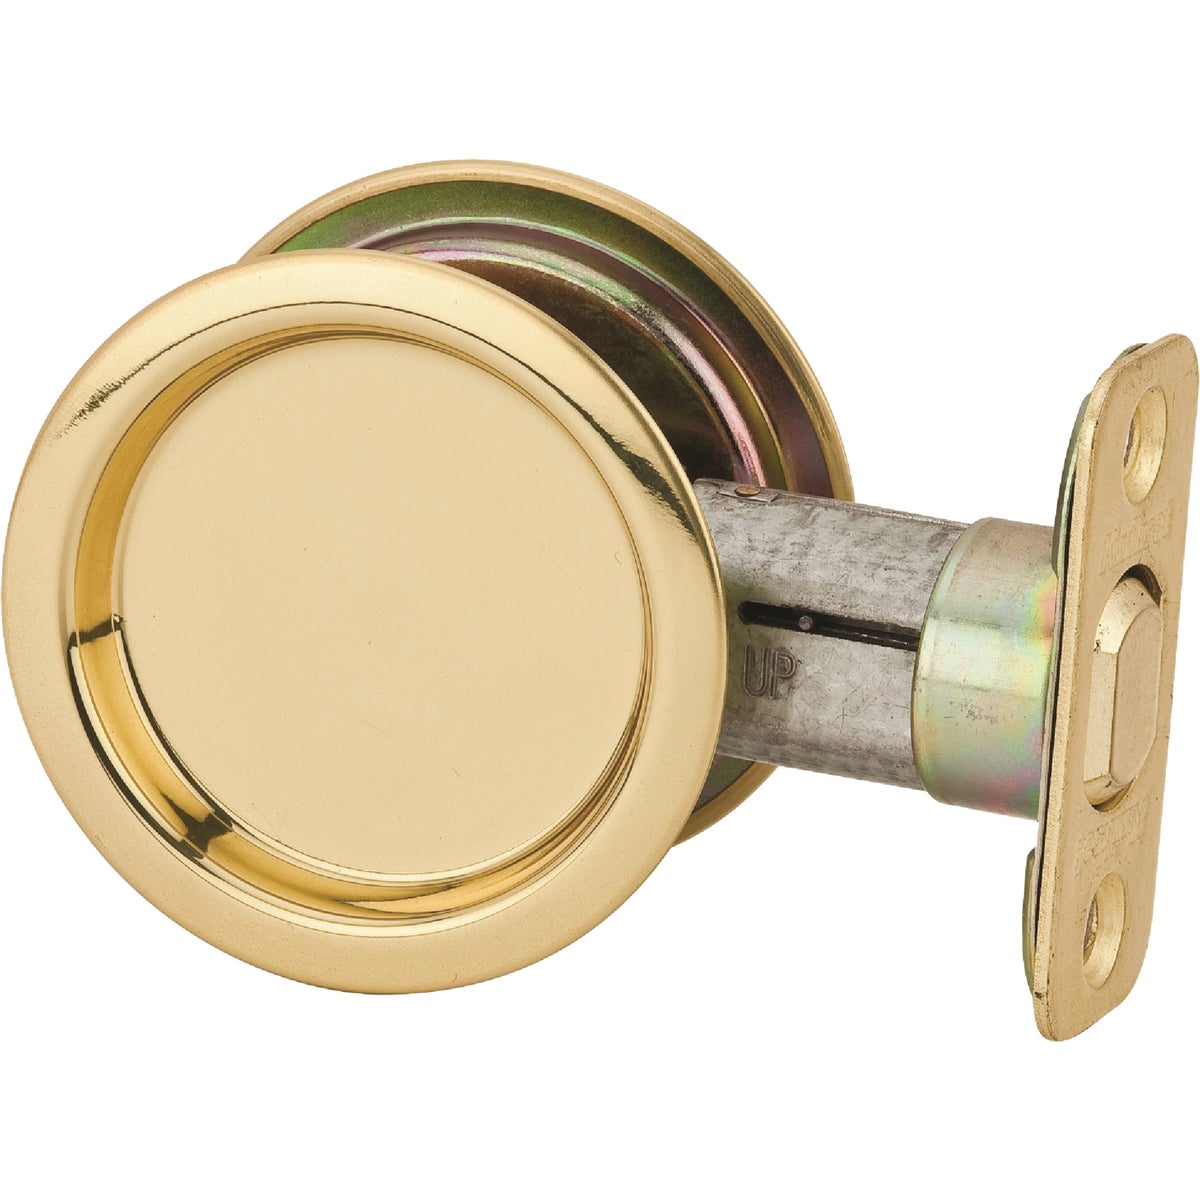 Kwikset PB PASS POCKET DOOR PULL 334 3